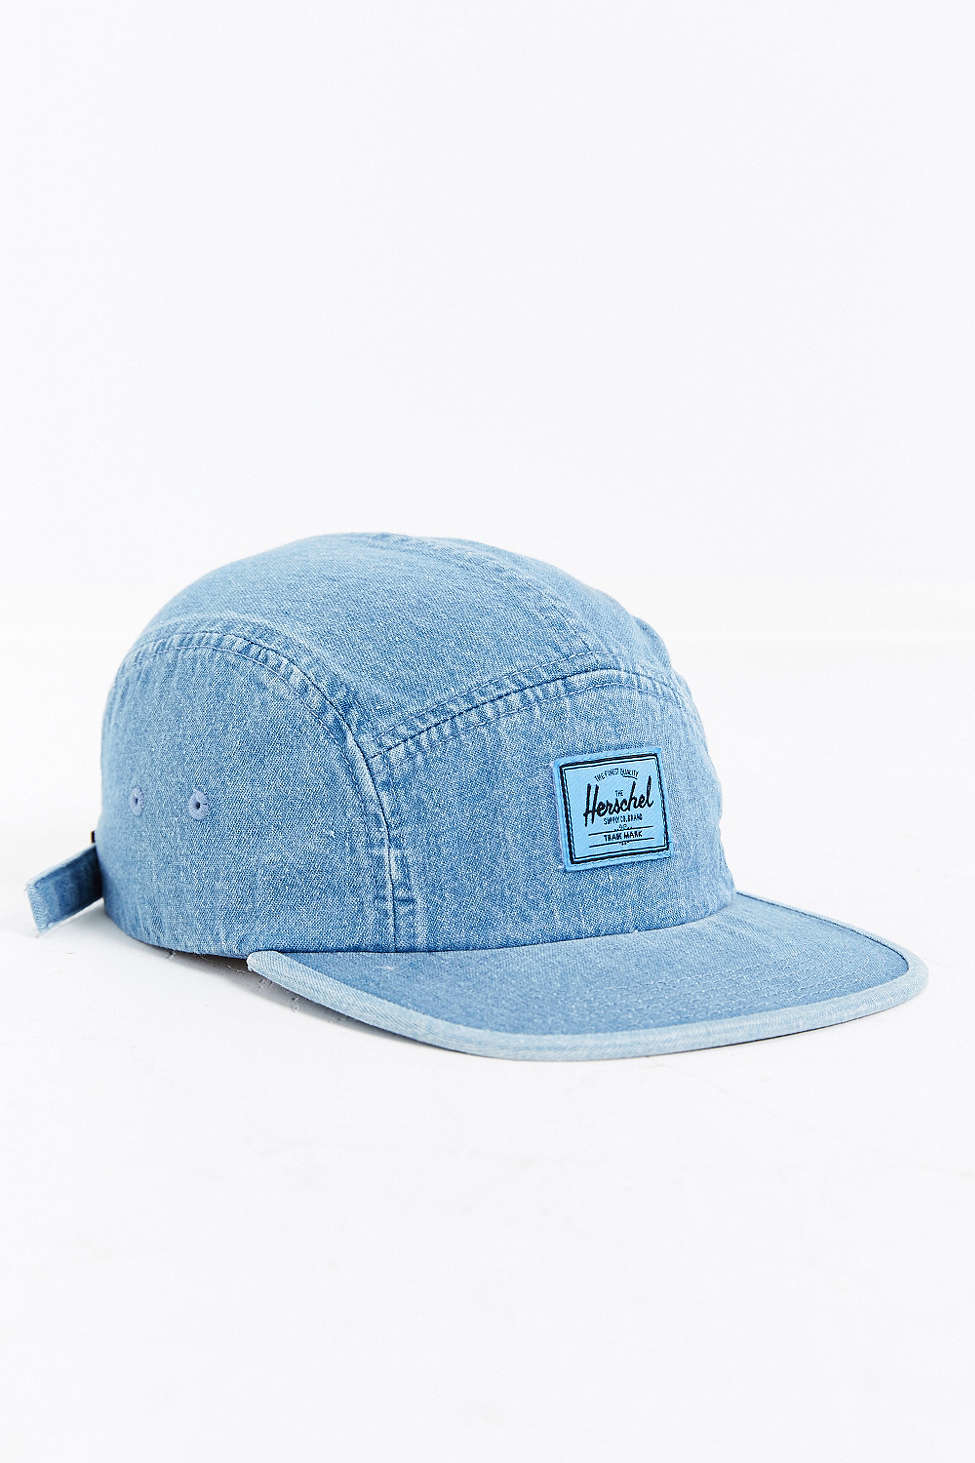 Lyst - Herschel Supply Co. 5-panel Baseball Hat in Blue for Men 8bb031fa092